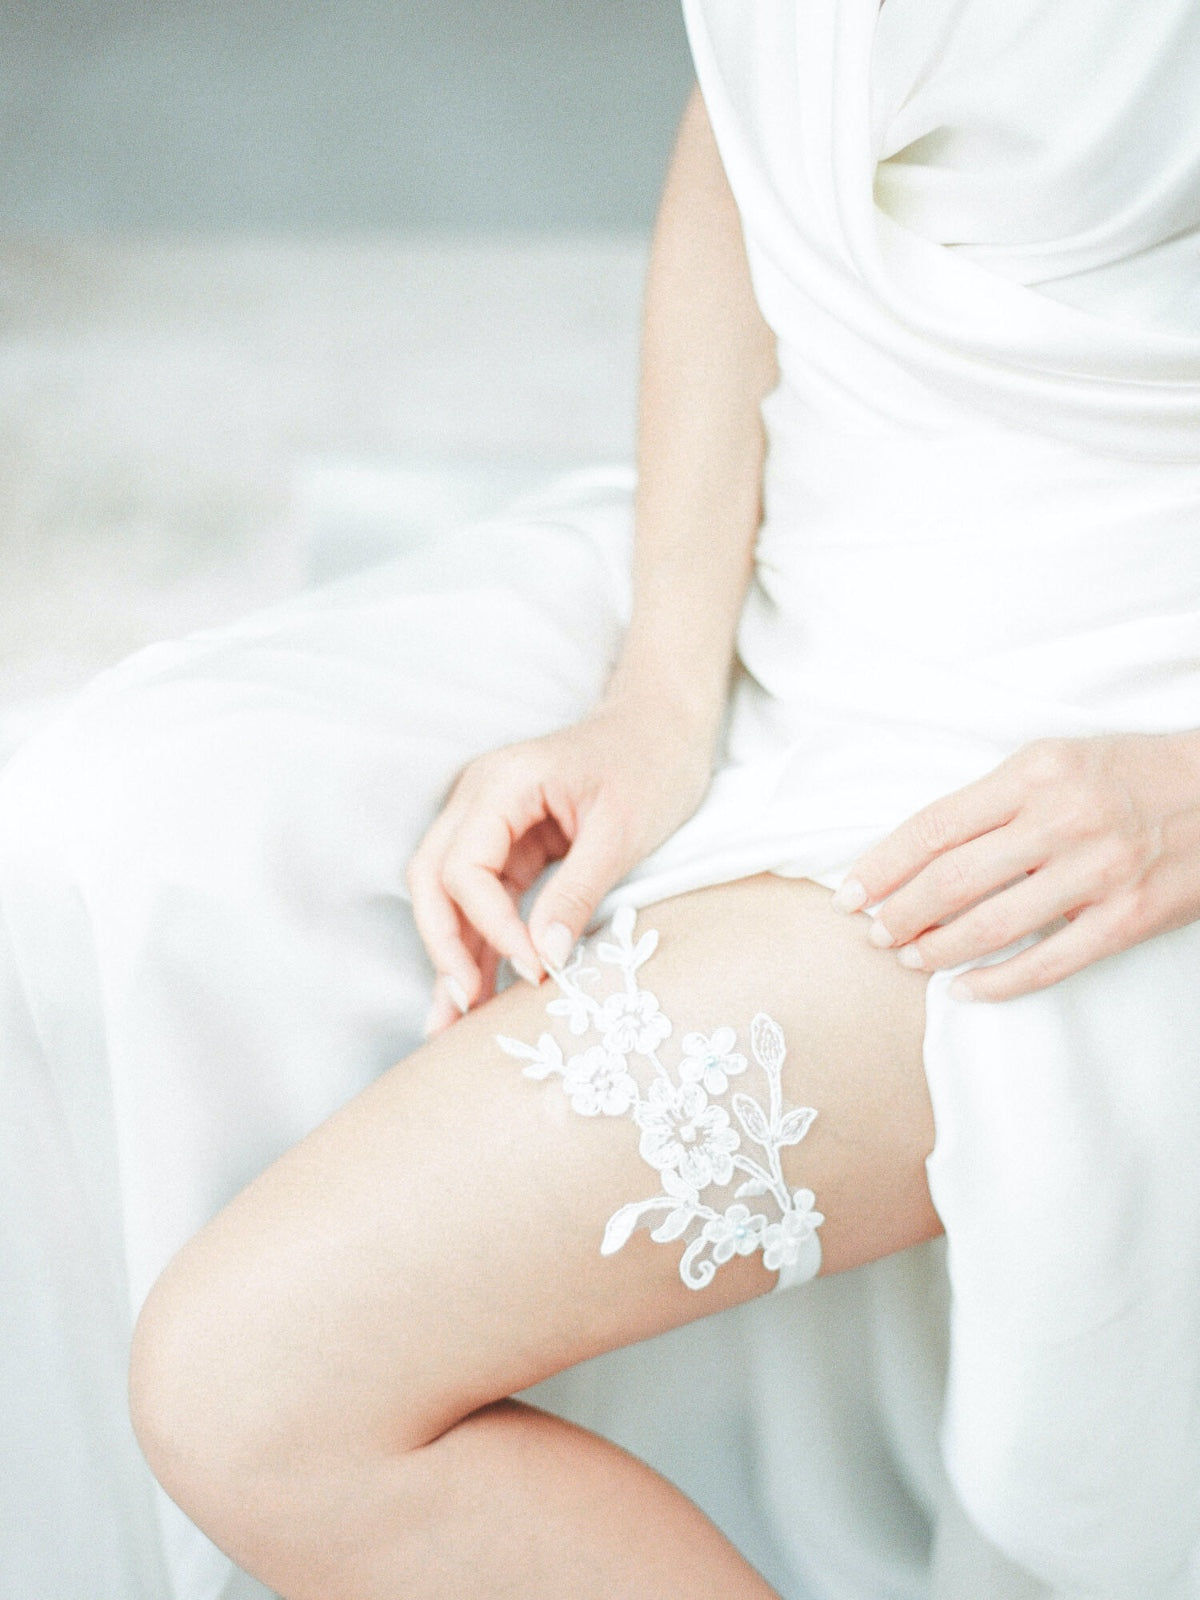 Breathtaking Wedding On The Amalfi Coast with French Lace Bridal Garter.